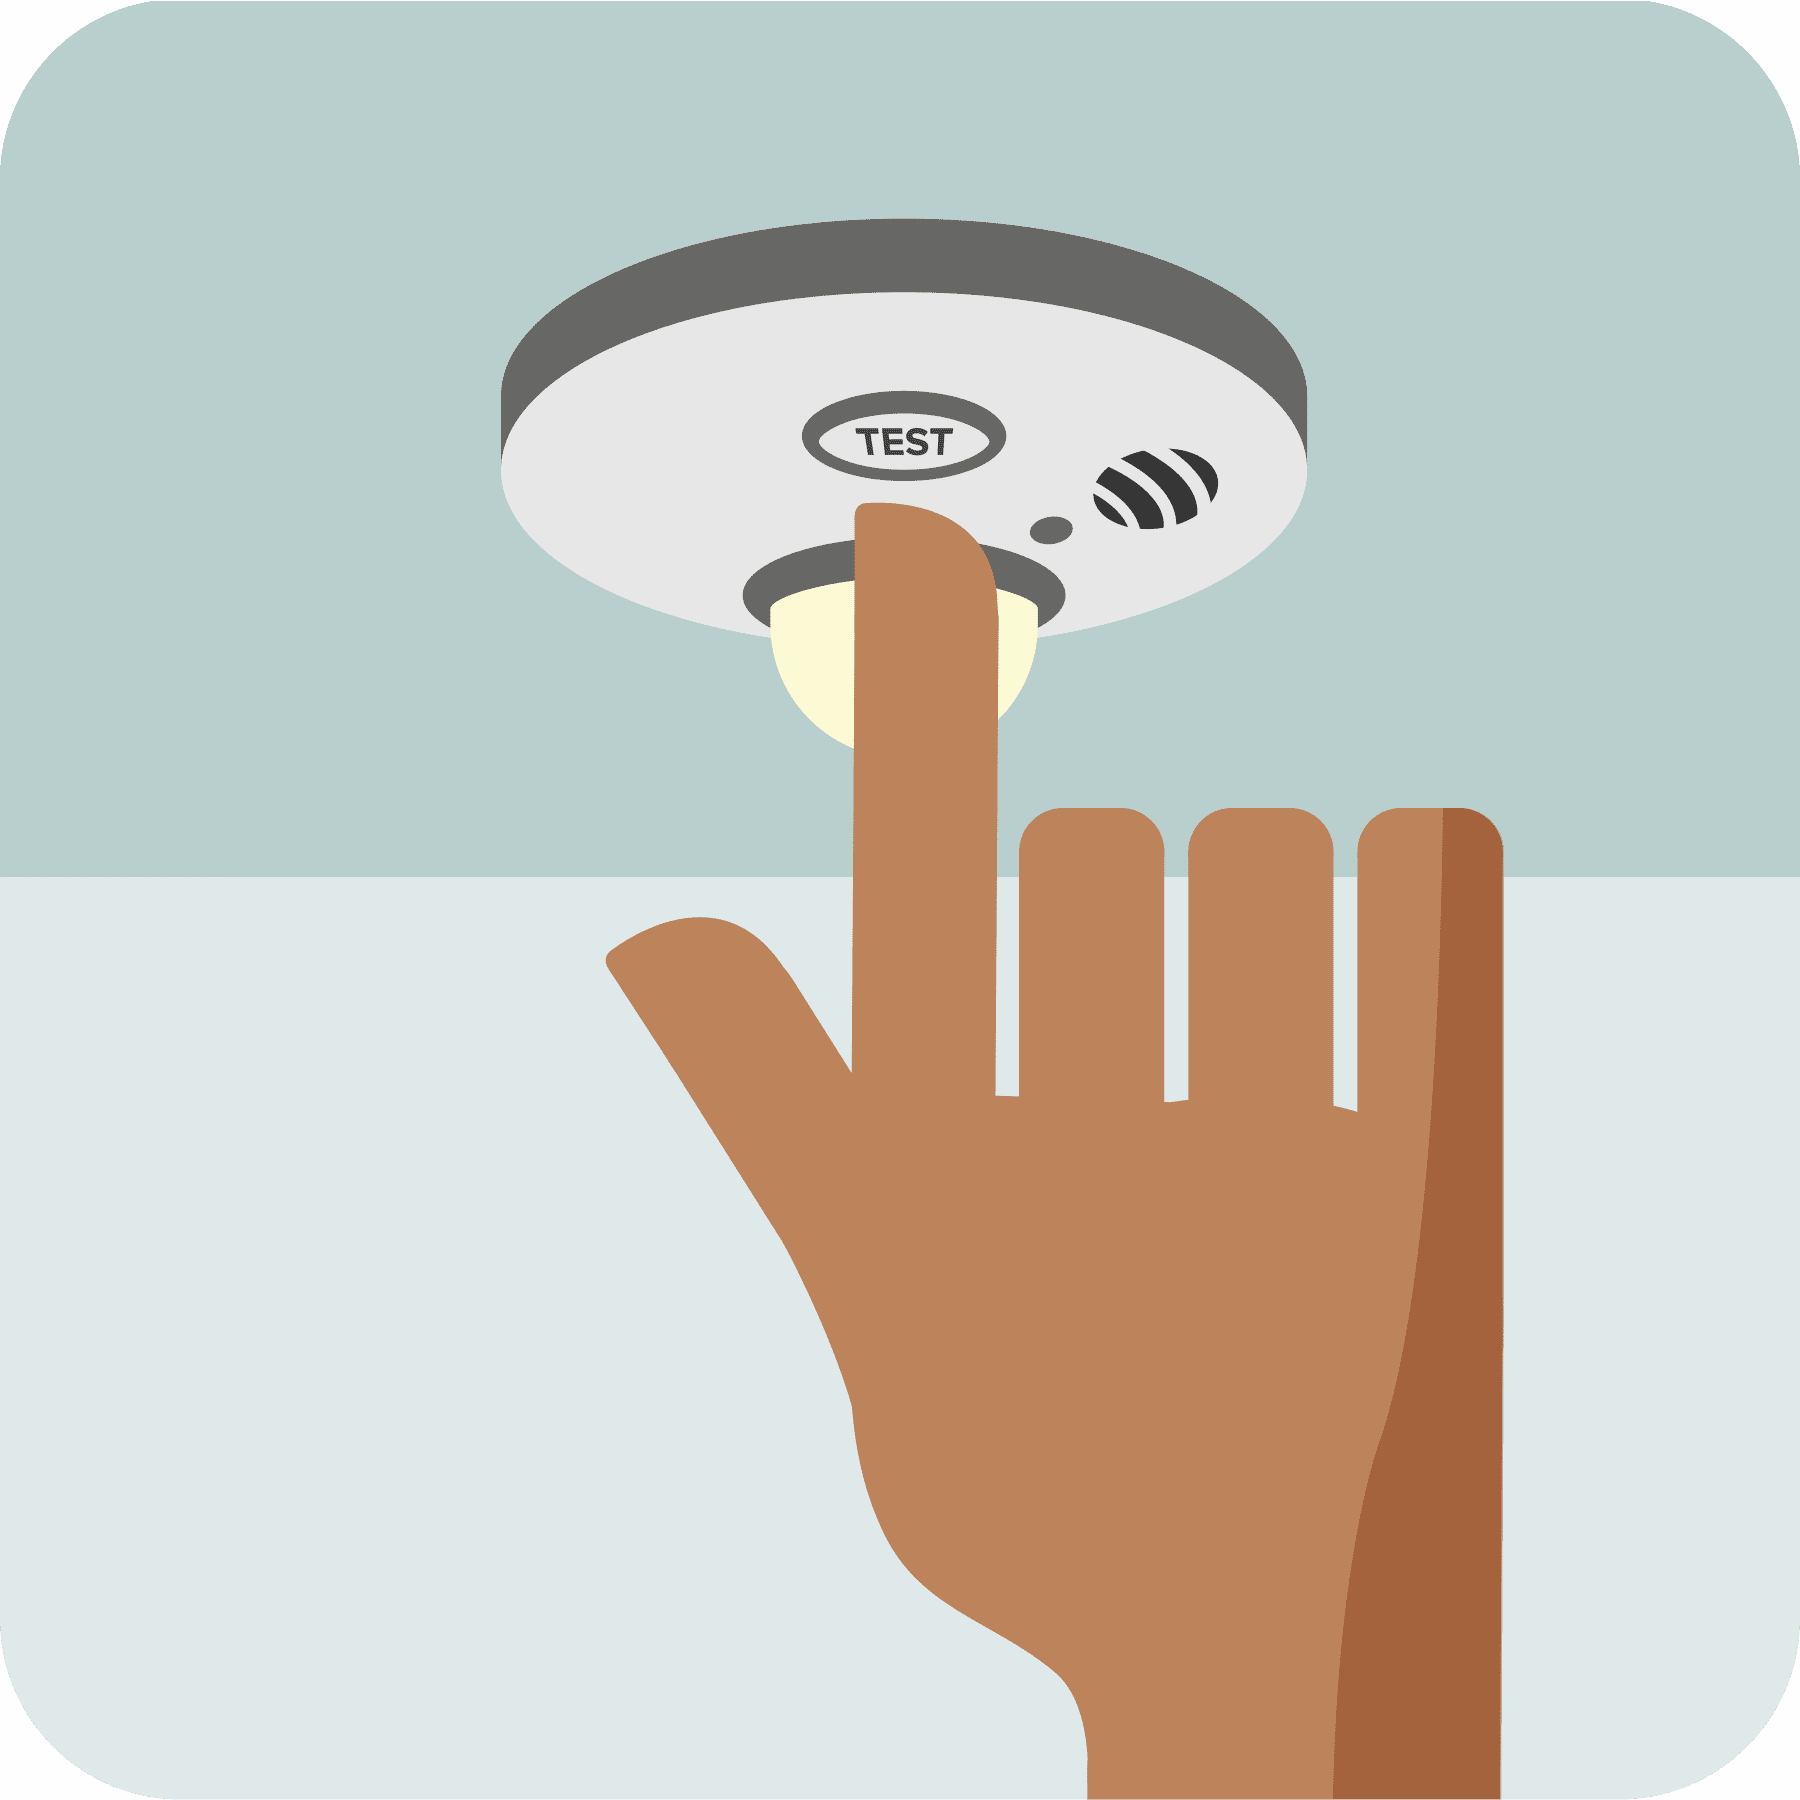 A man's hand pressing the test button on the strobe light smoke alarm.